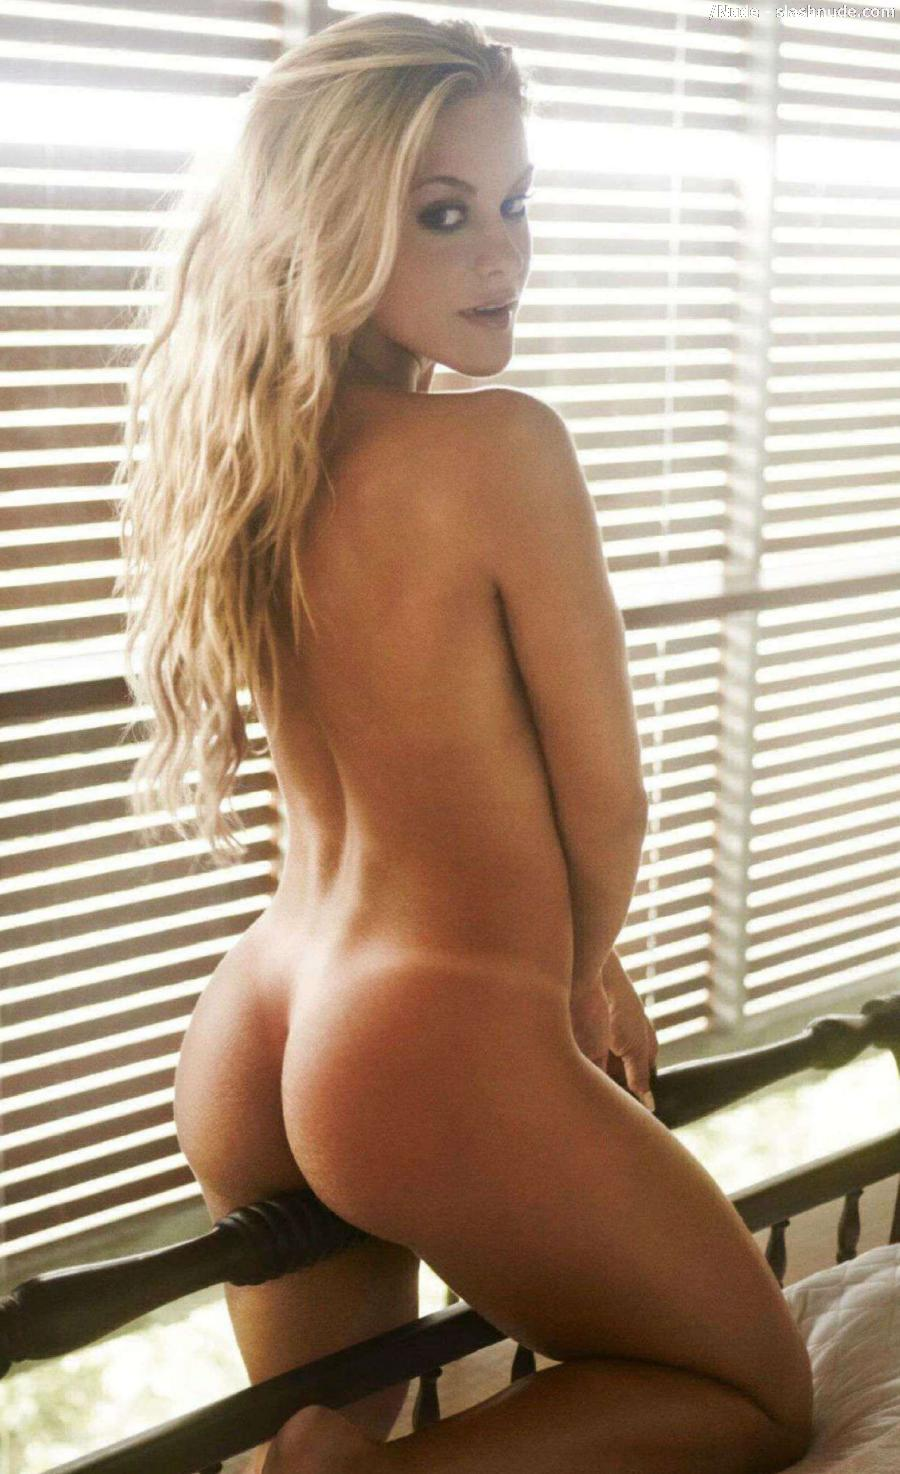 100 Images of Andrea Ware Nude